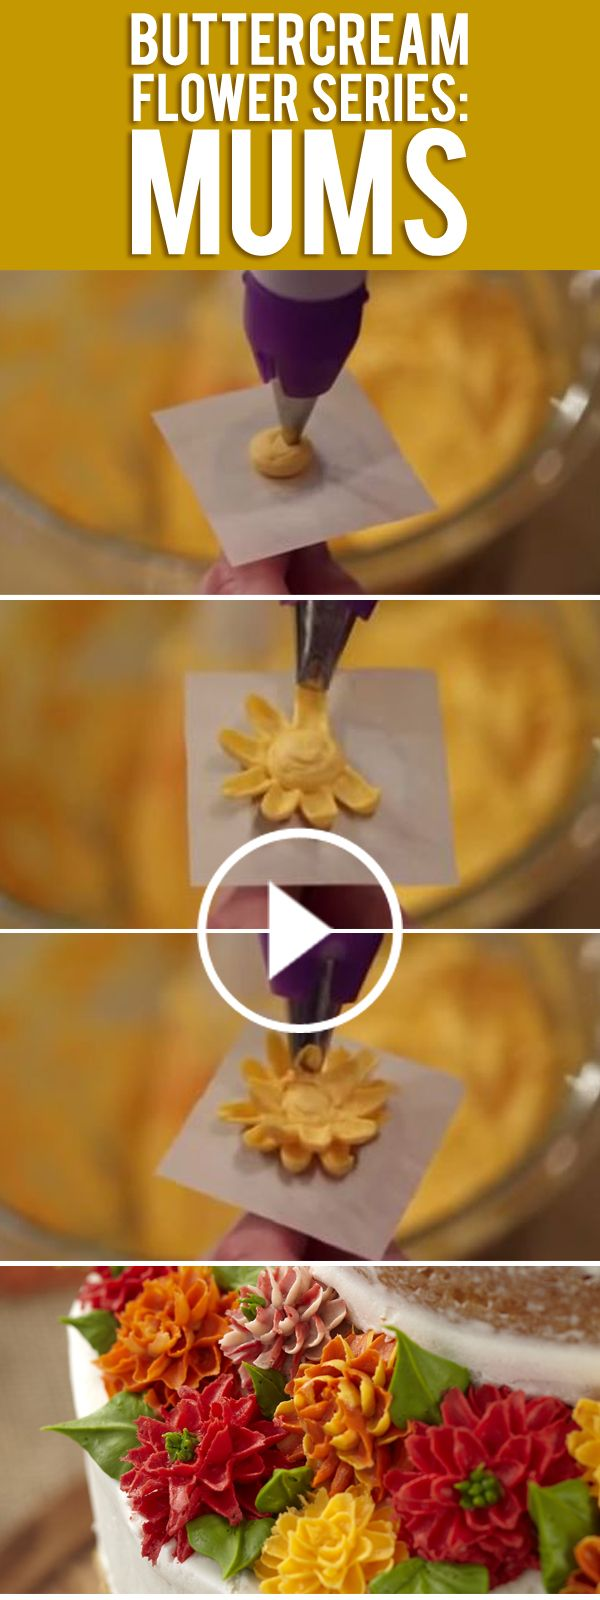 How to Make Easy Royal Icing Flowers - CakeWhiz